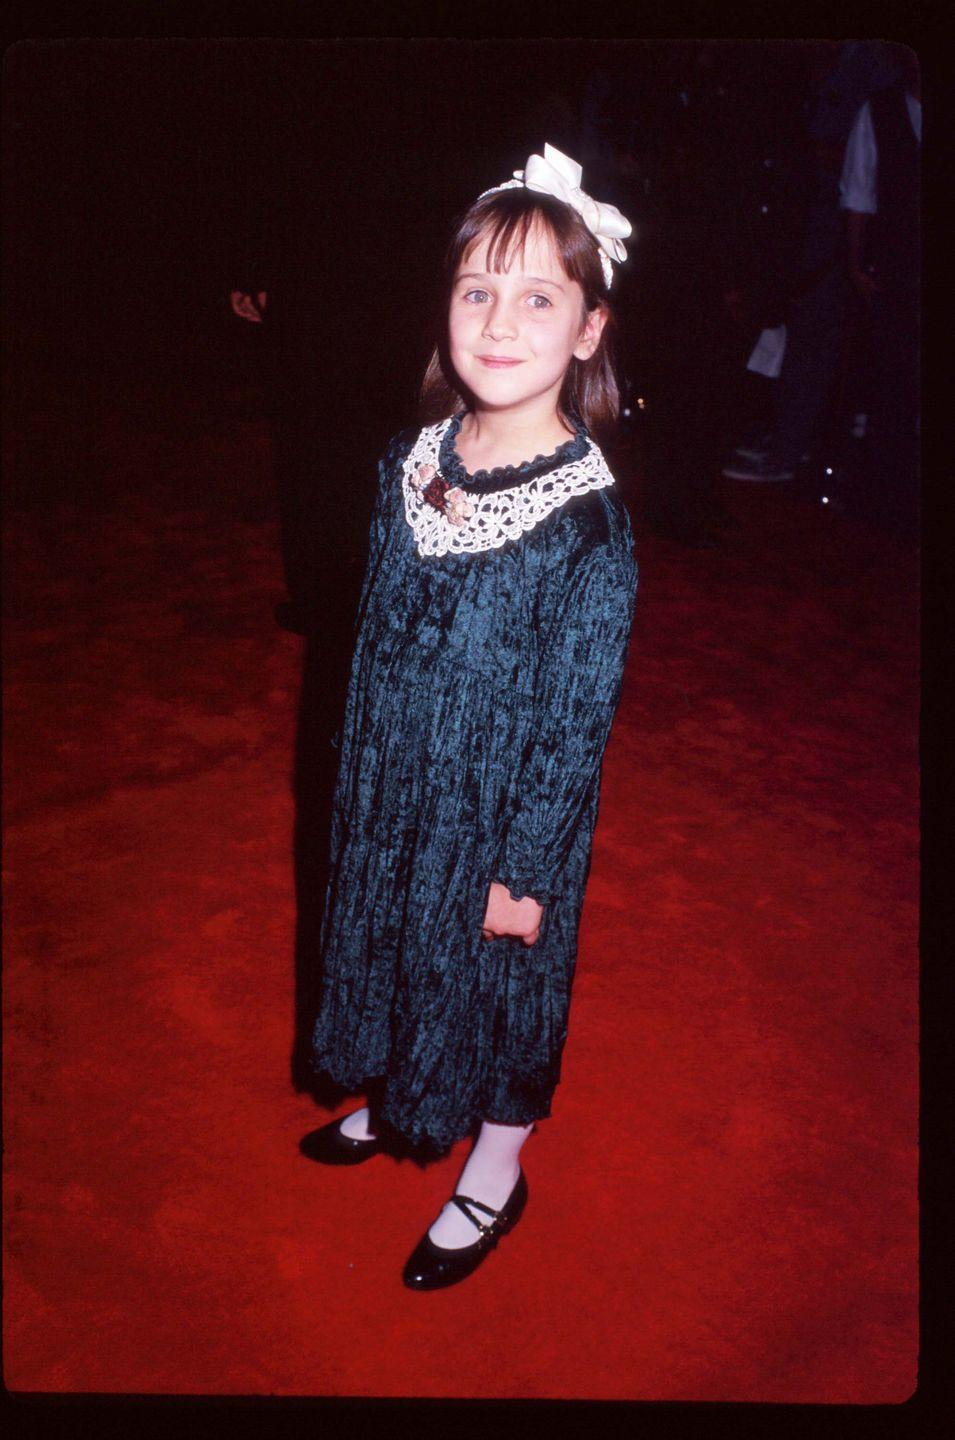 <p>After her first role in <em>Mrs. Doubtfire, </em>Mara Wilson quickly became one of the biggest child stars of the '90s. Before the age of 10, she landed several lead roles, including in <em>Matilda </em>and<em> Miracle on 34th Street</em>. </p>